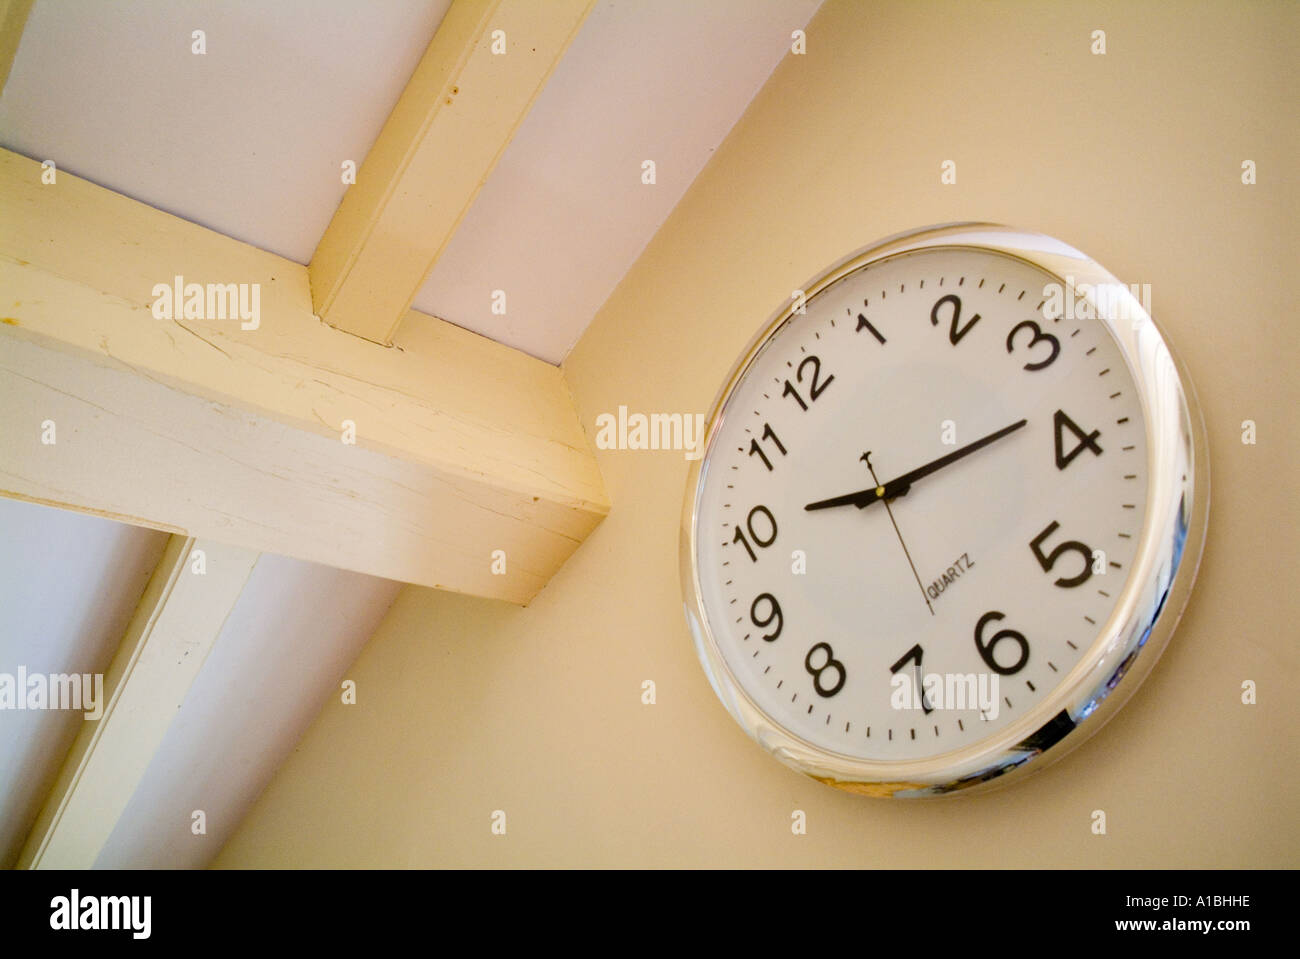 Clock on a kitchen wall - Stock Image